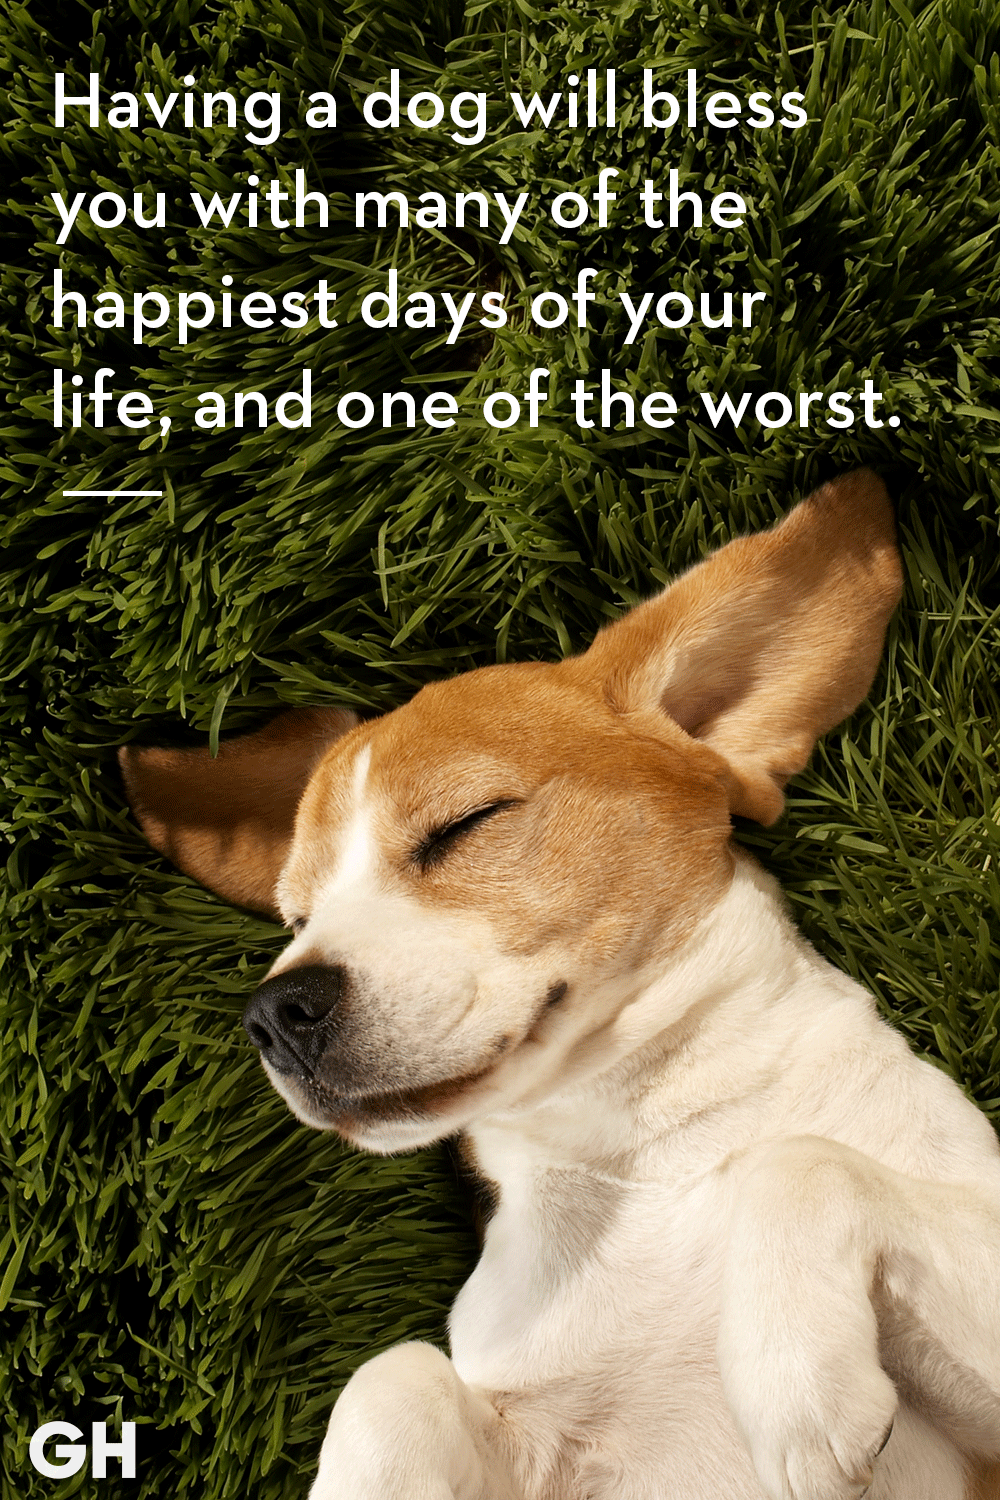 30 Dog Quotes That Every Animal Lover Will Relate To - Best Dog Quotes